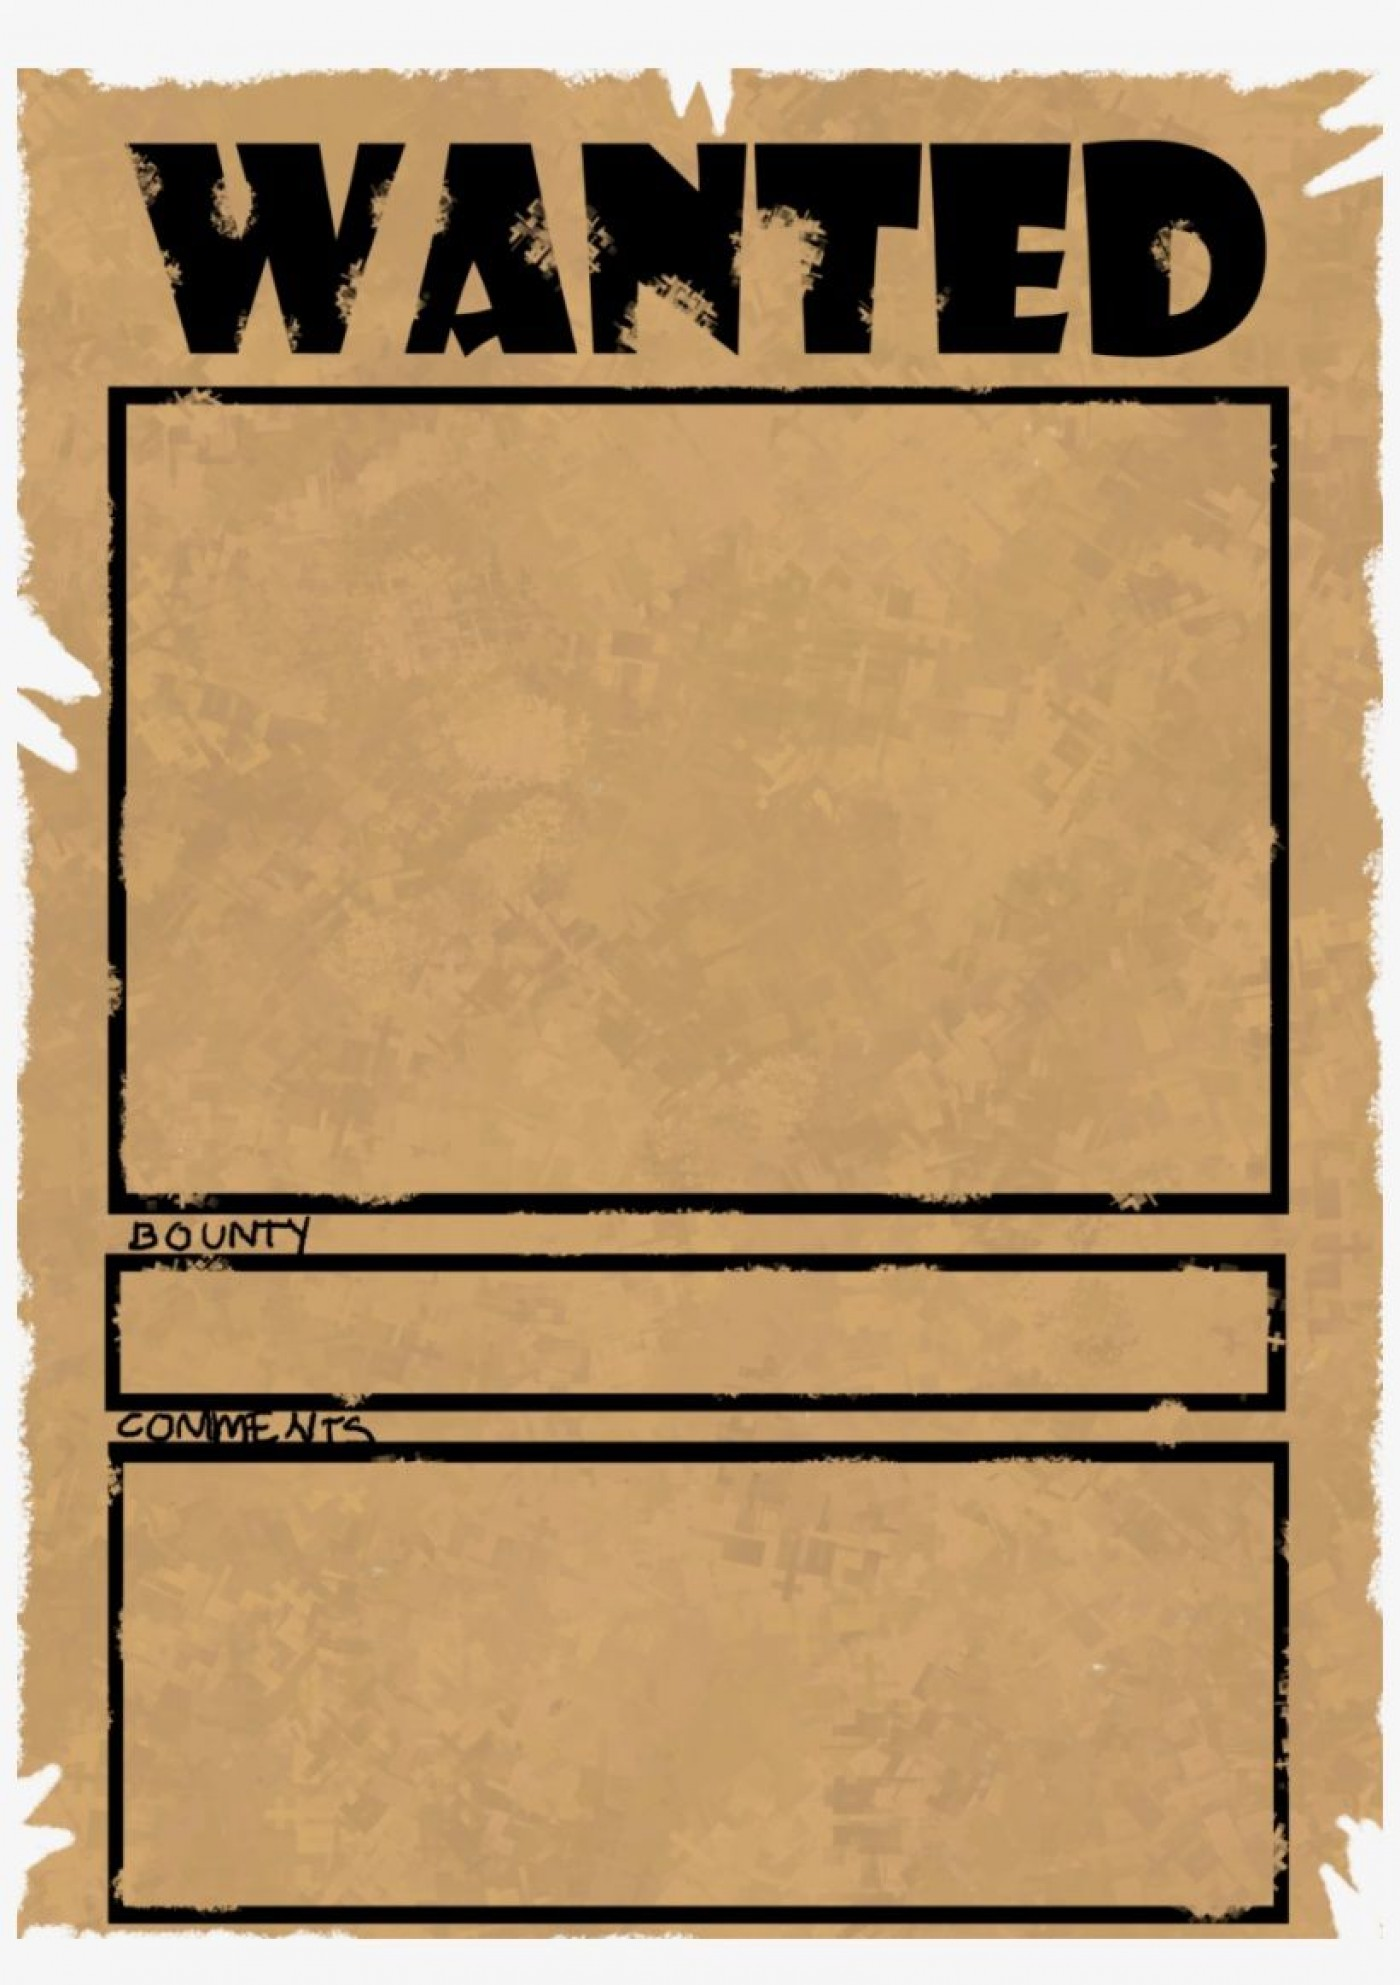 002 Imposing Wanted Poster Template Microsoft Word High Resolution  Western Most1400